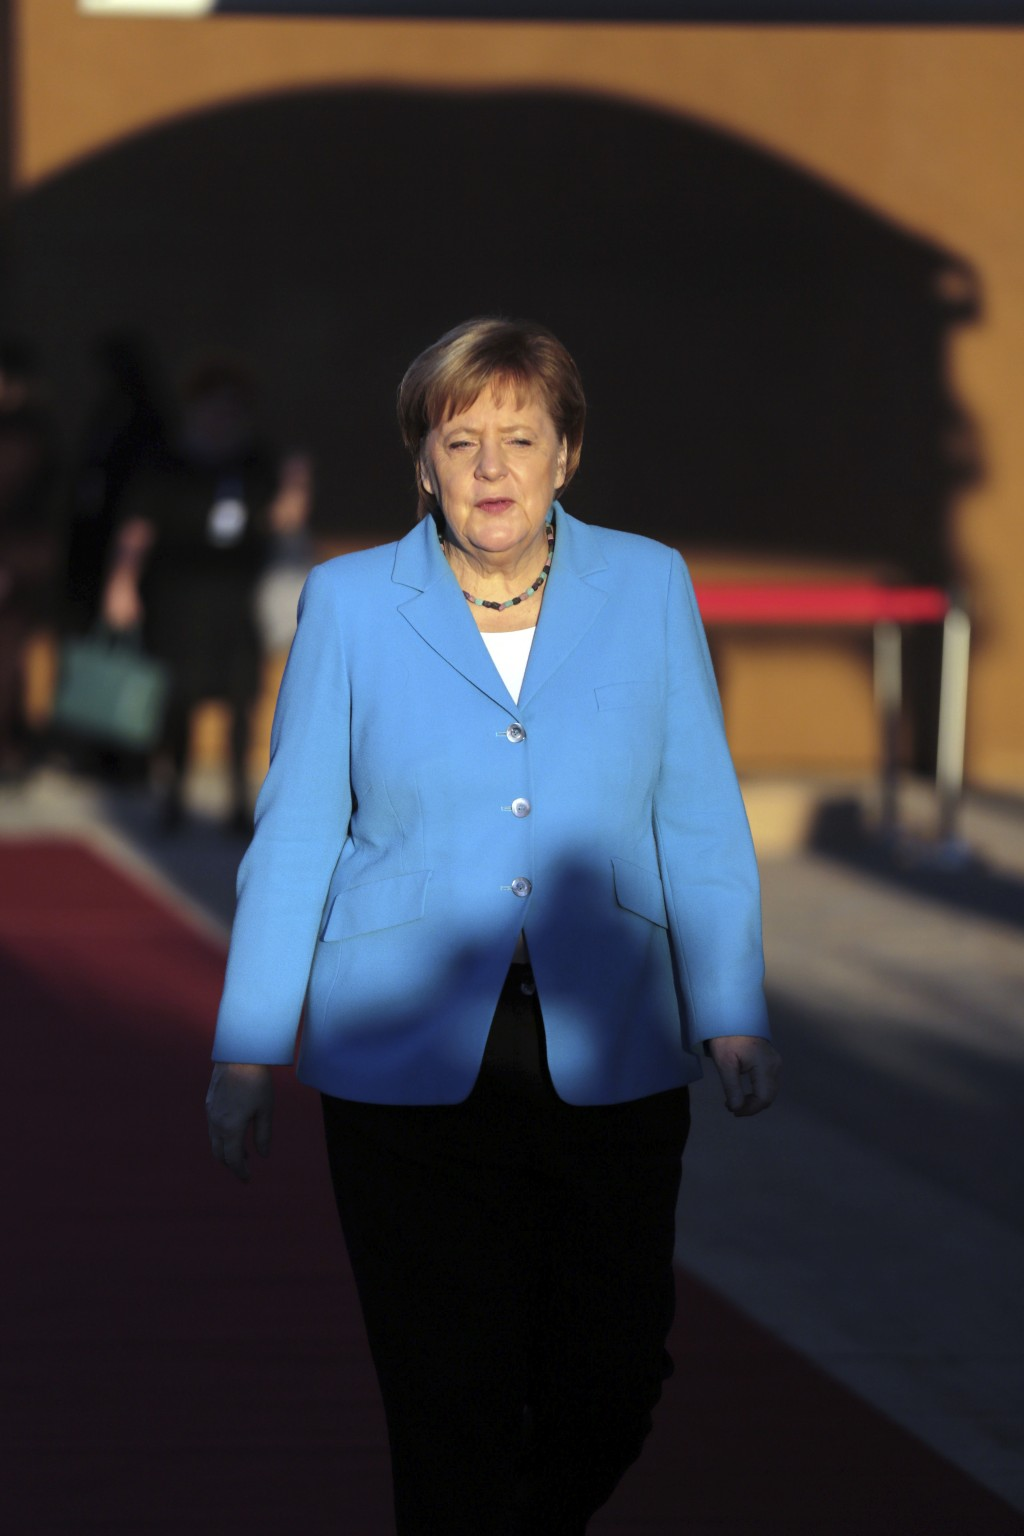 German Chancellor Angela Merkel arrives to attend a UN Migration Conference in Marrakech, Morocco, Monday, Dec.10, 2018. Top U.N. officials and govern